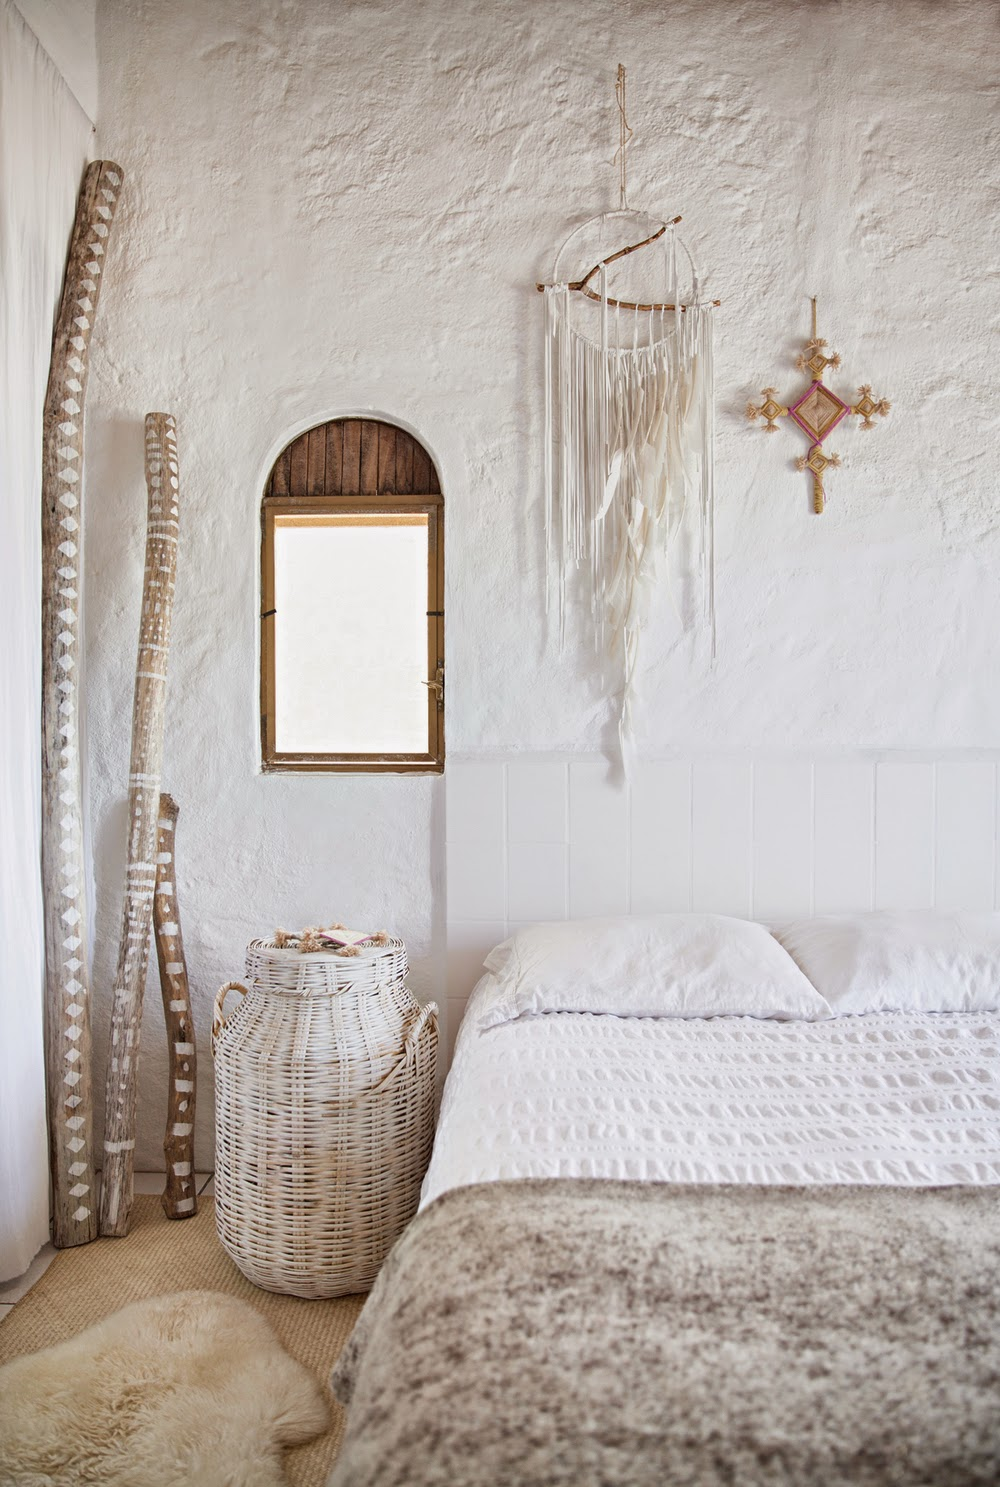 Folk textiles and works of local artisans give the house a unique look and character. I love various dreamcatchers hanging all around, they are so cool3